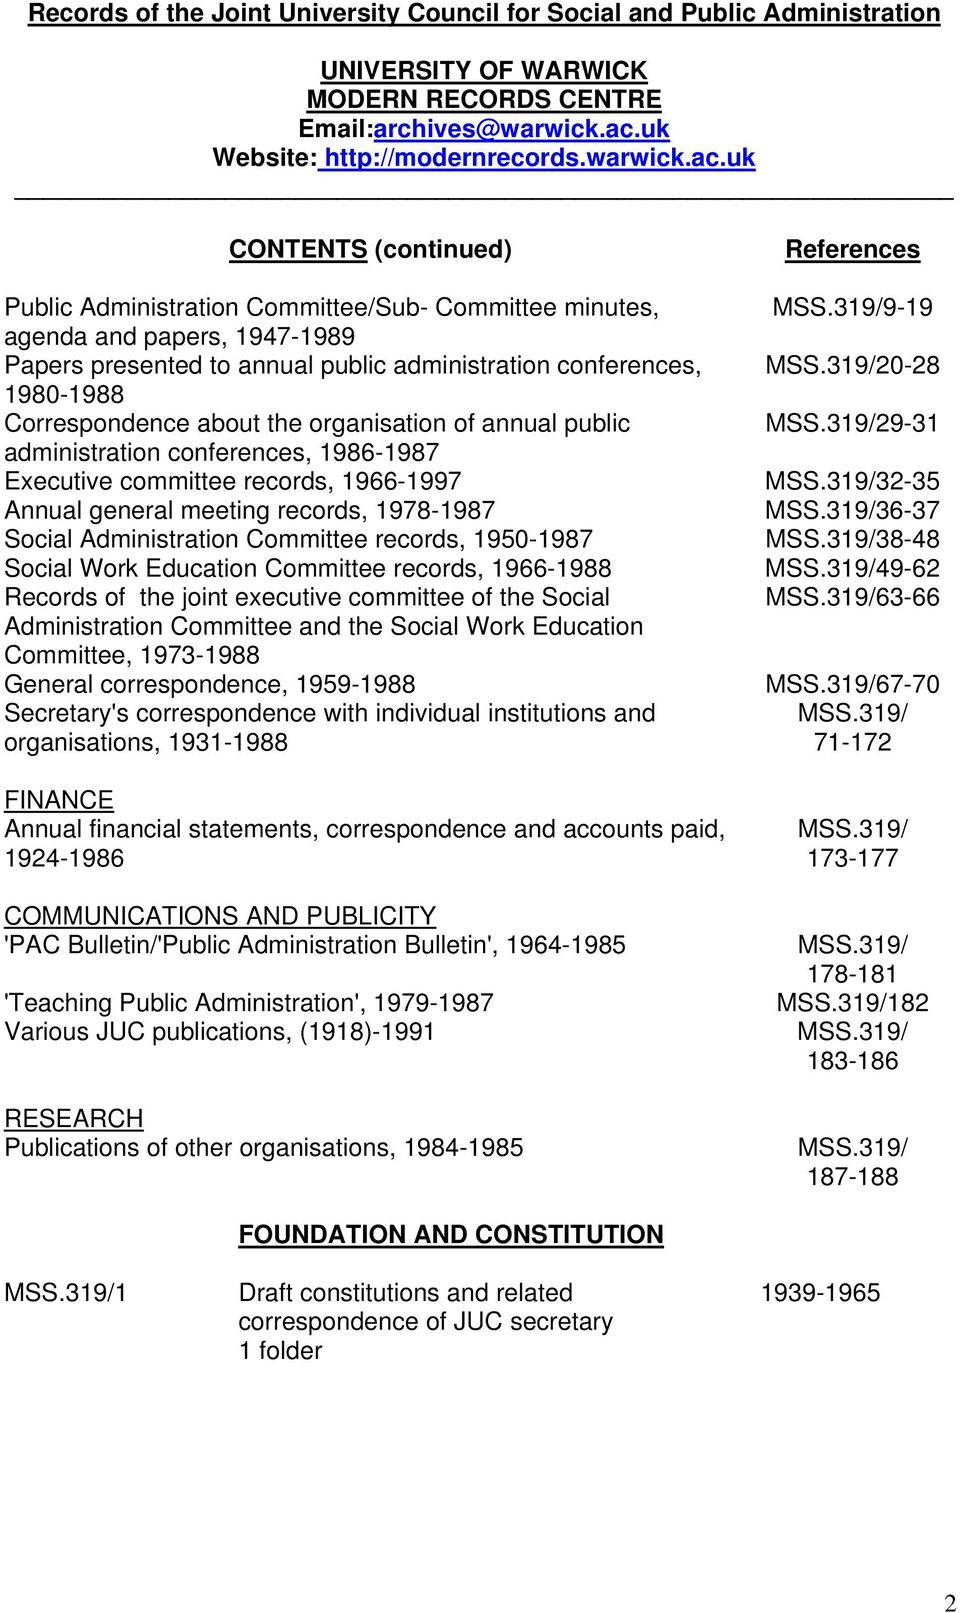 1950-1987 Social Work Education Committee records, 1966-1988 Records of the joint executive committee of the Social Administration Committee and the Social Work Education Committee, 1973-1988 General